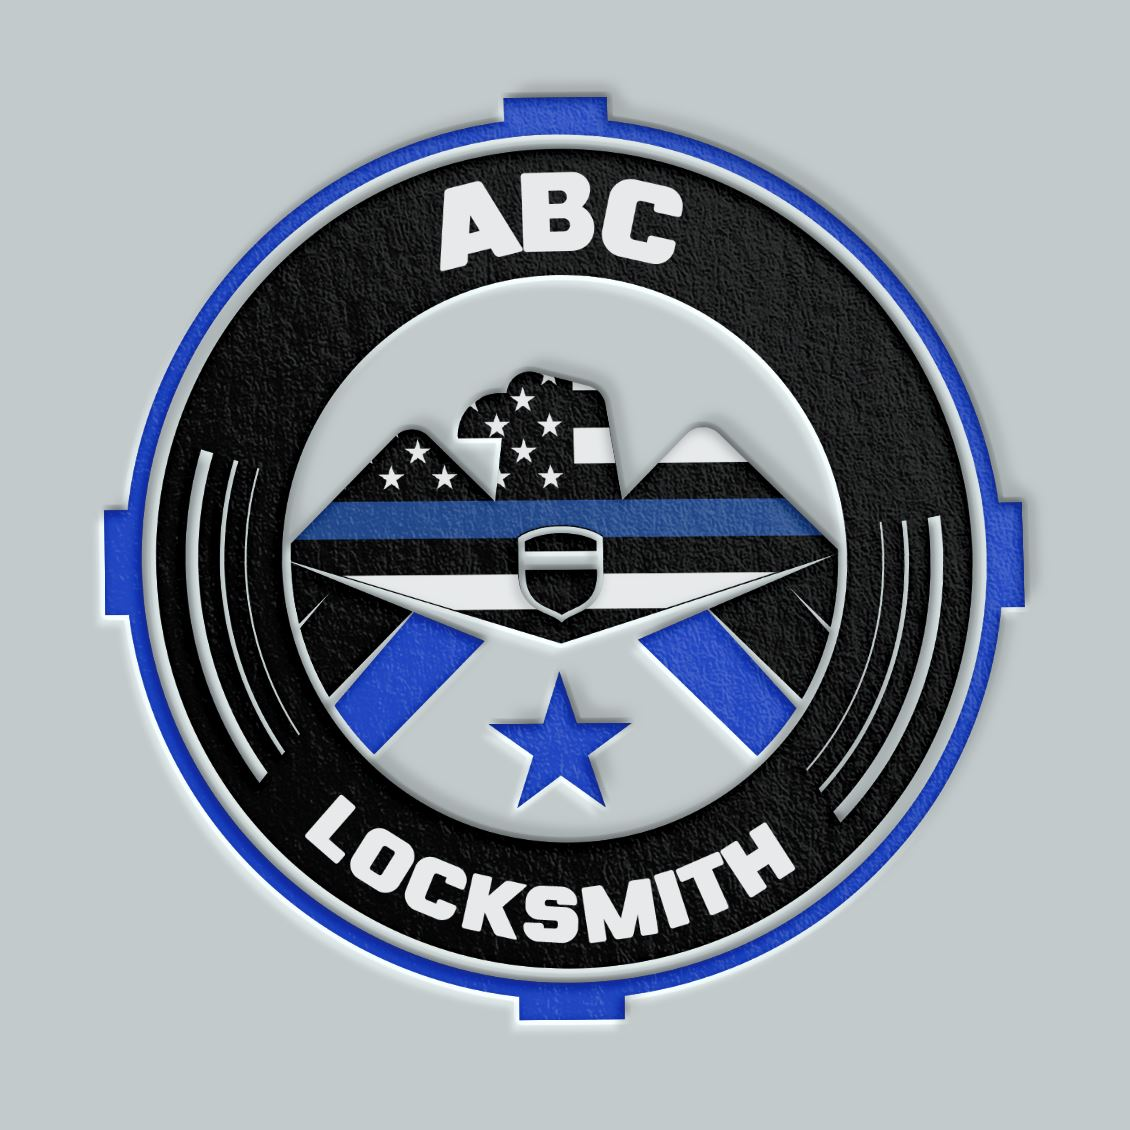 ABC LOCKSMITH